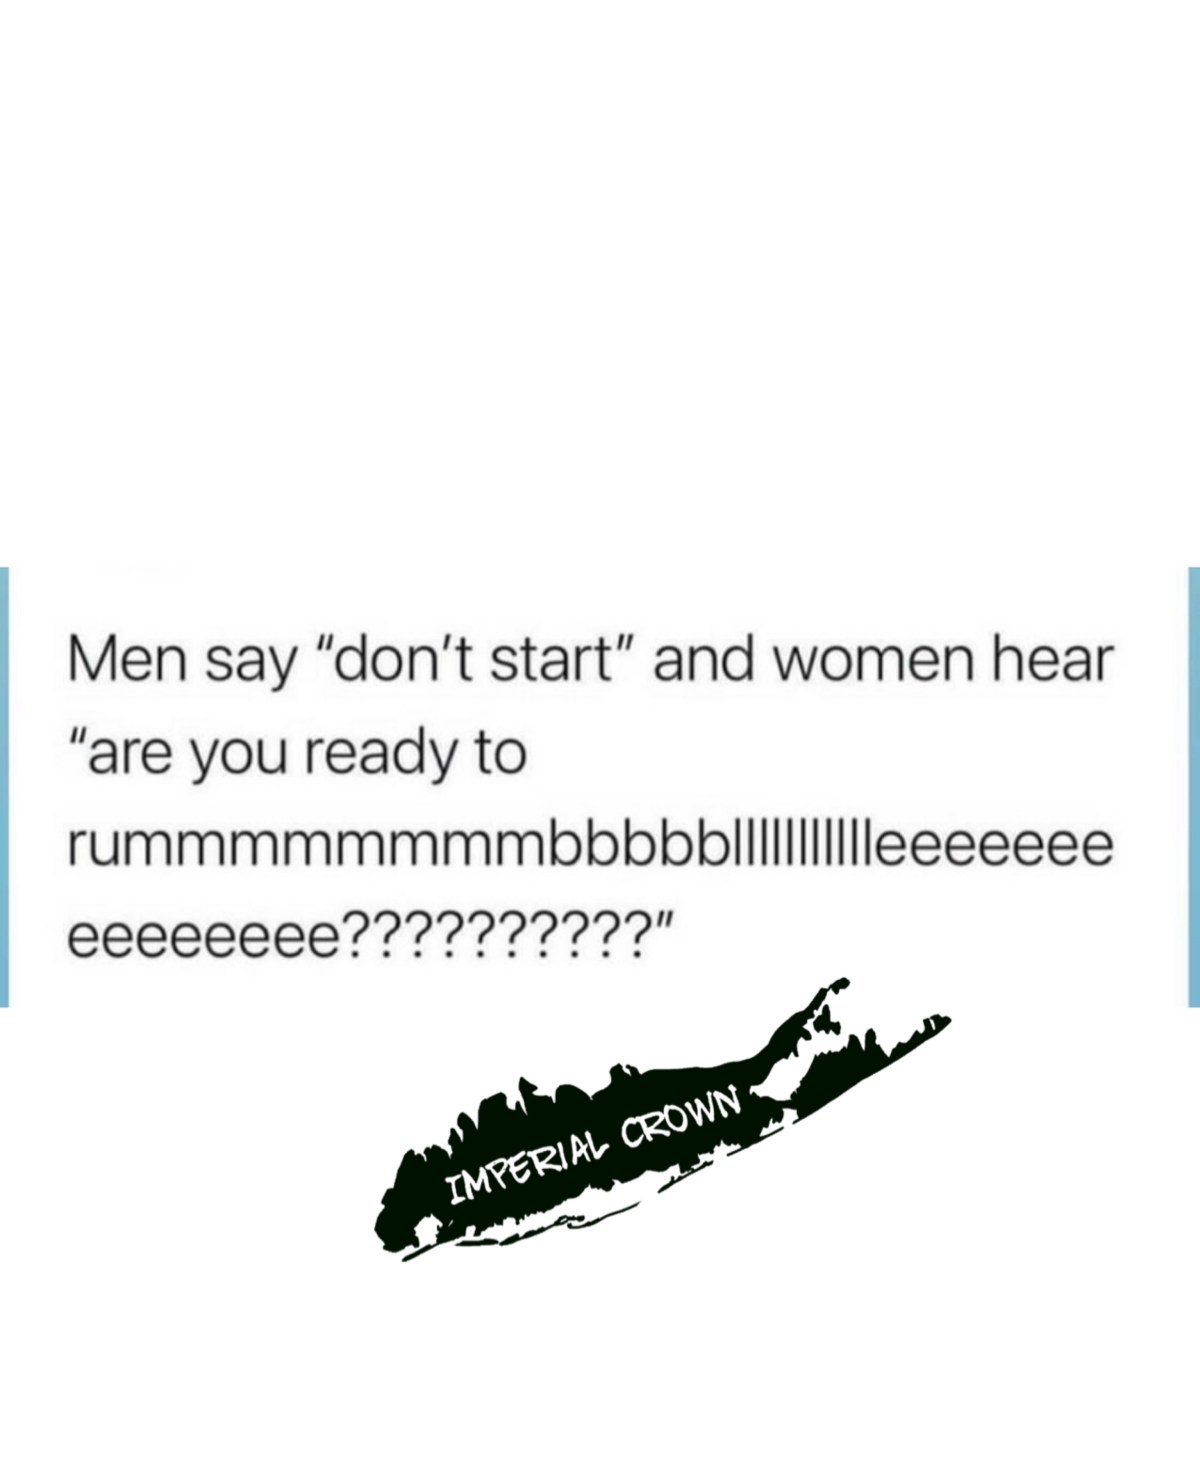 Men say don't start and women hear are you ready to rumble